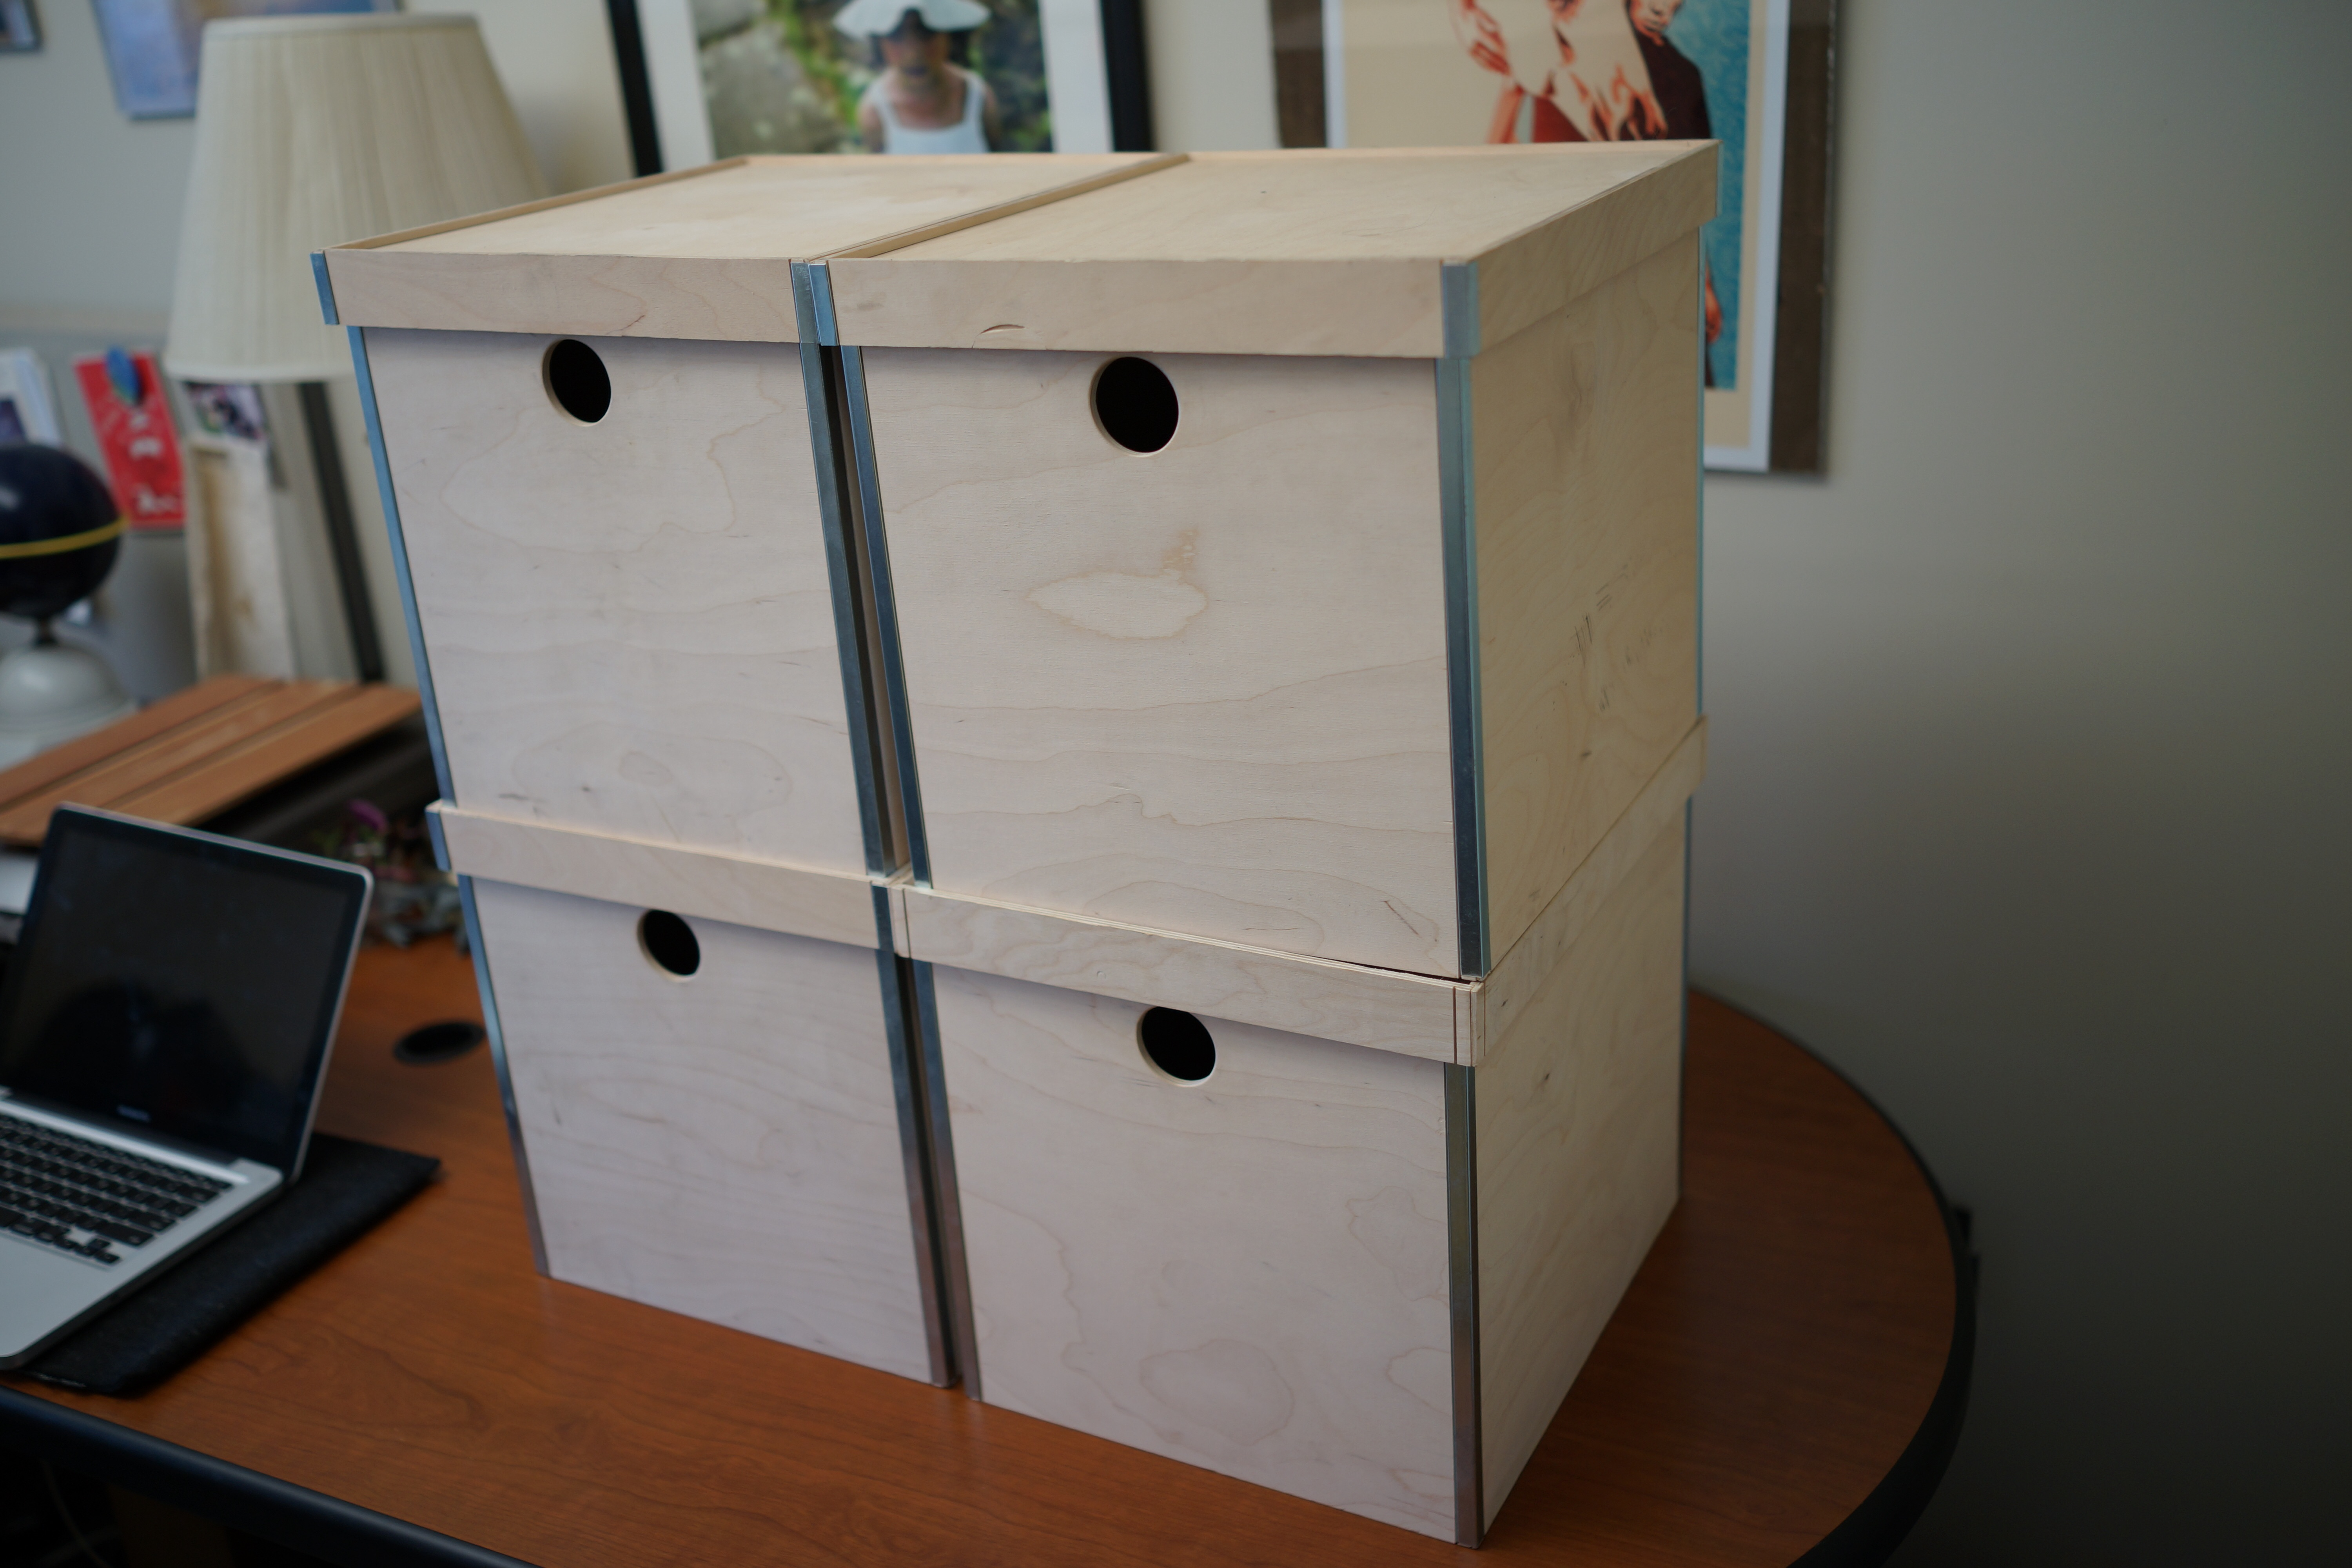 Aufbewahrungsbox Ikea Expedit Ikea Uk Storage Boxes Listitdallas